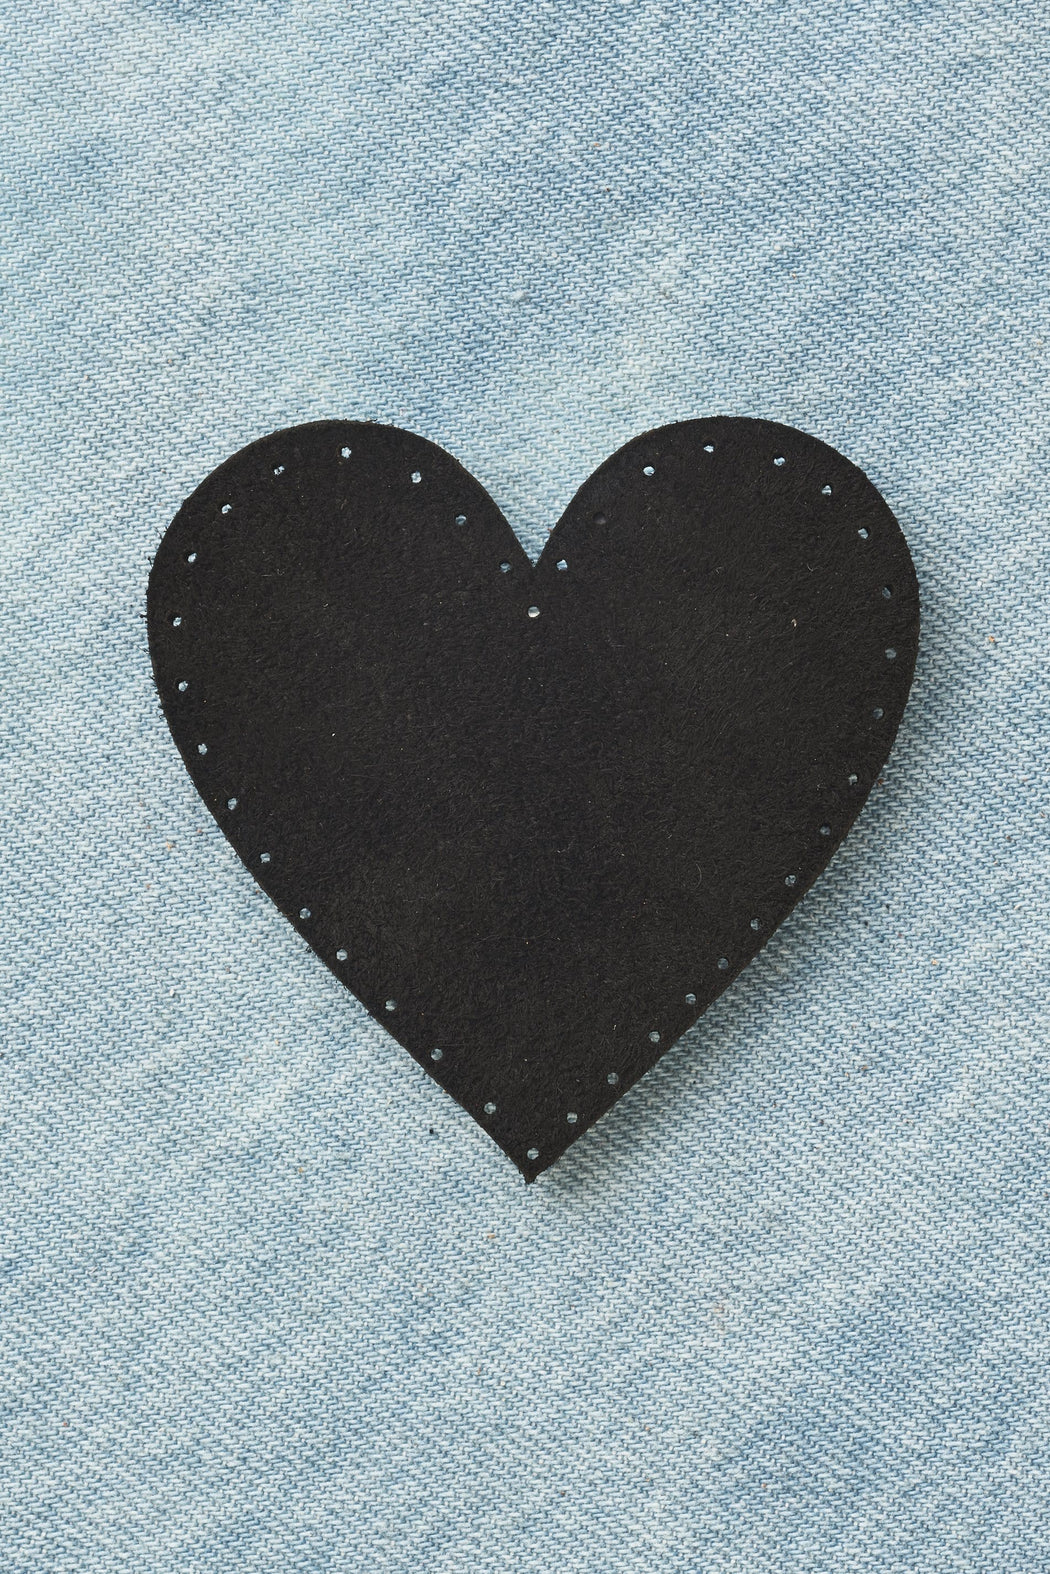 Heart Patch - Black Suede